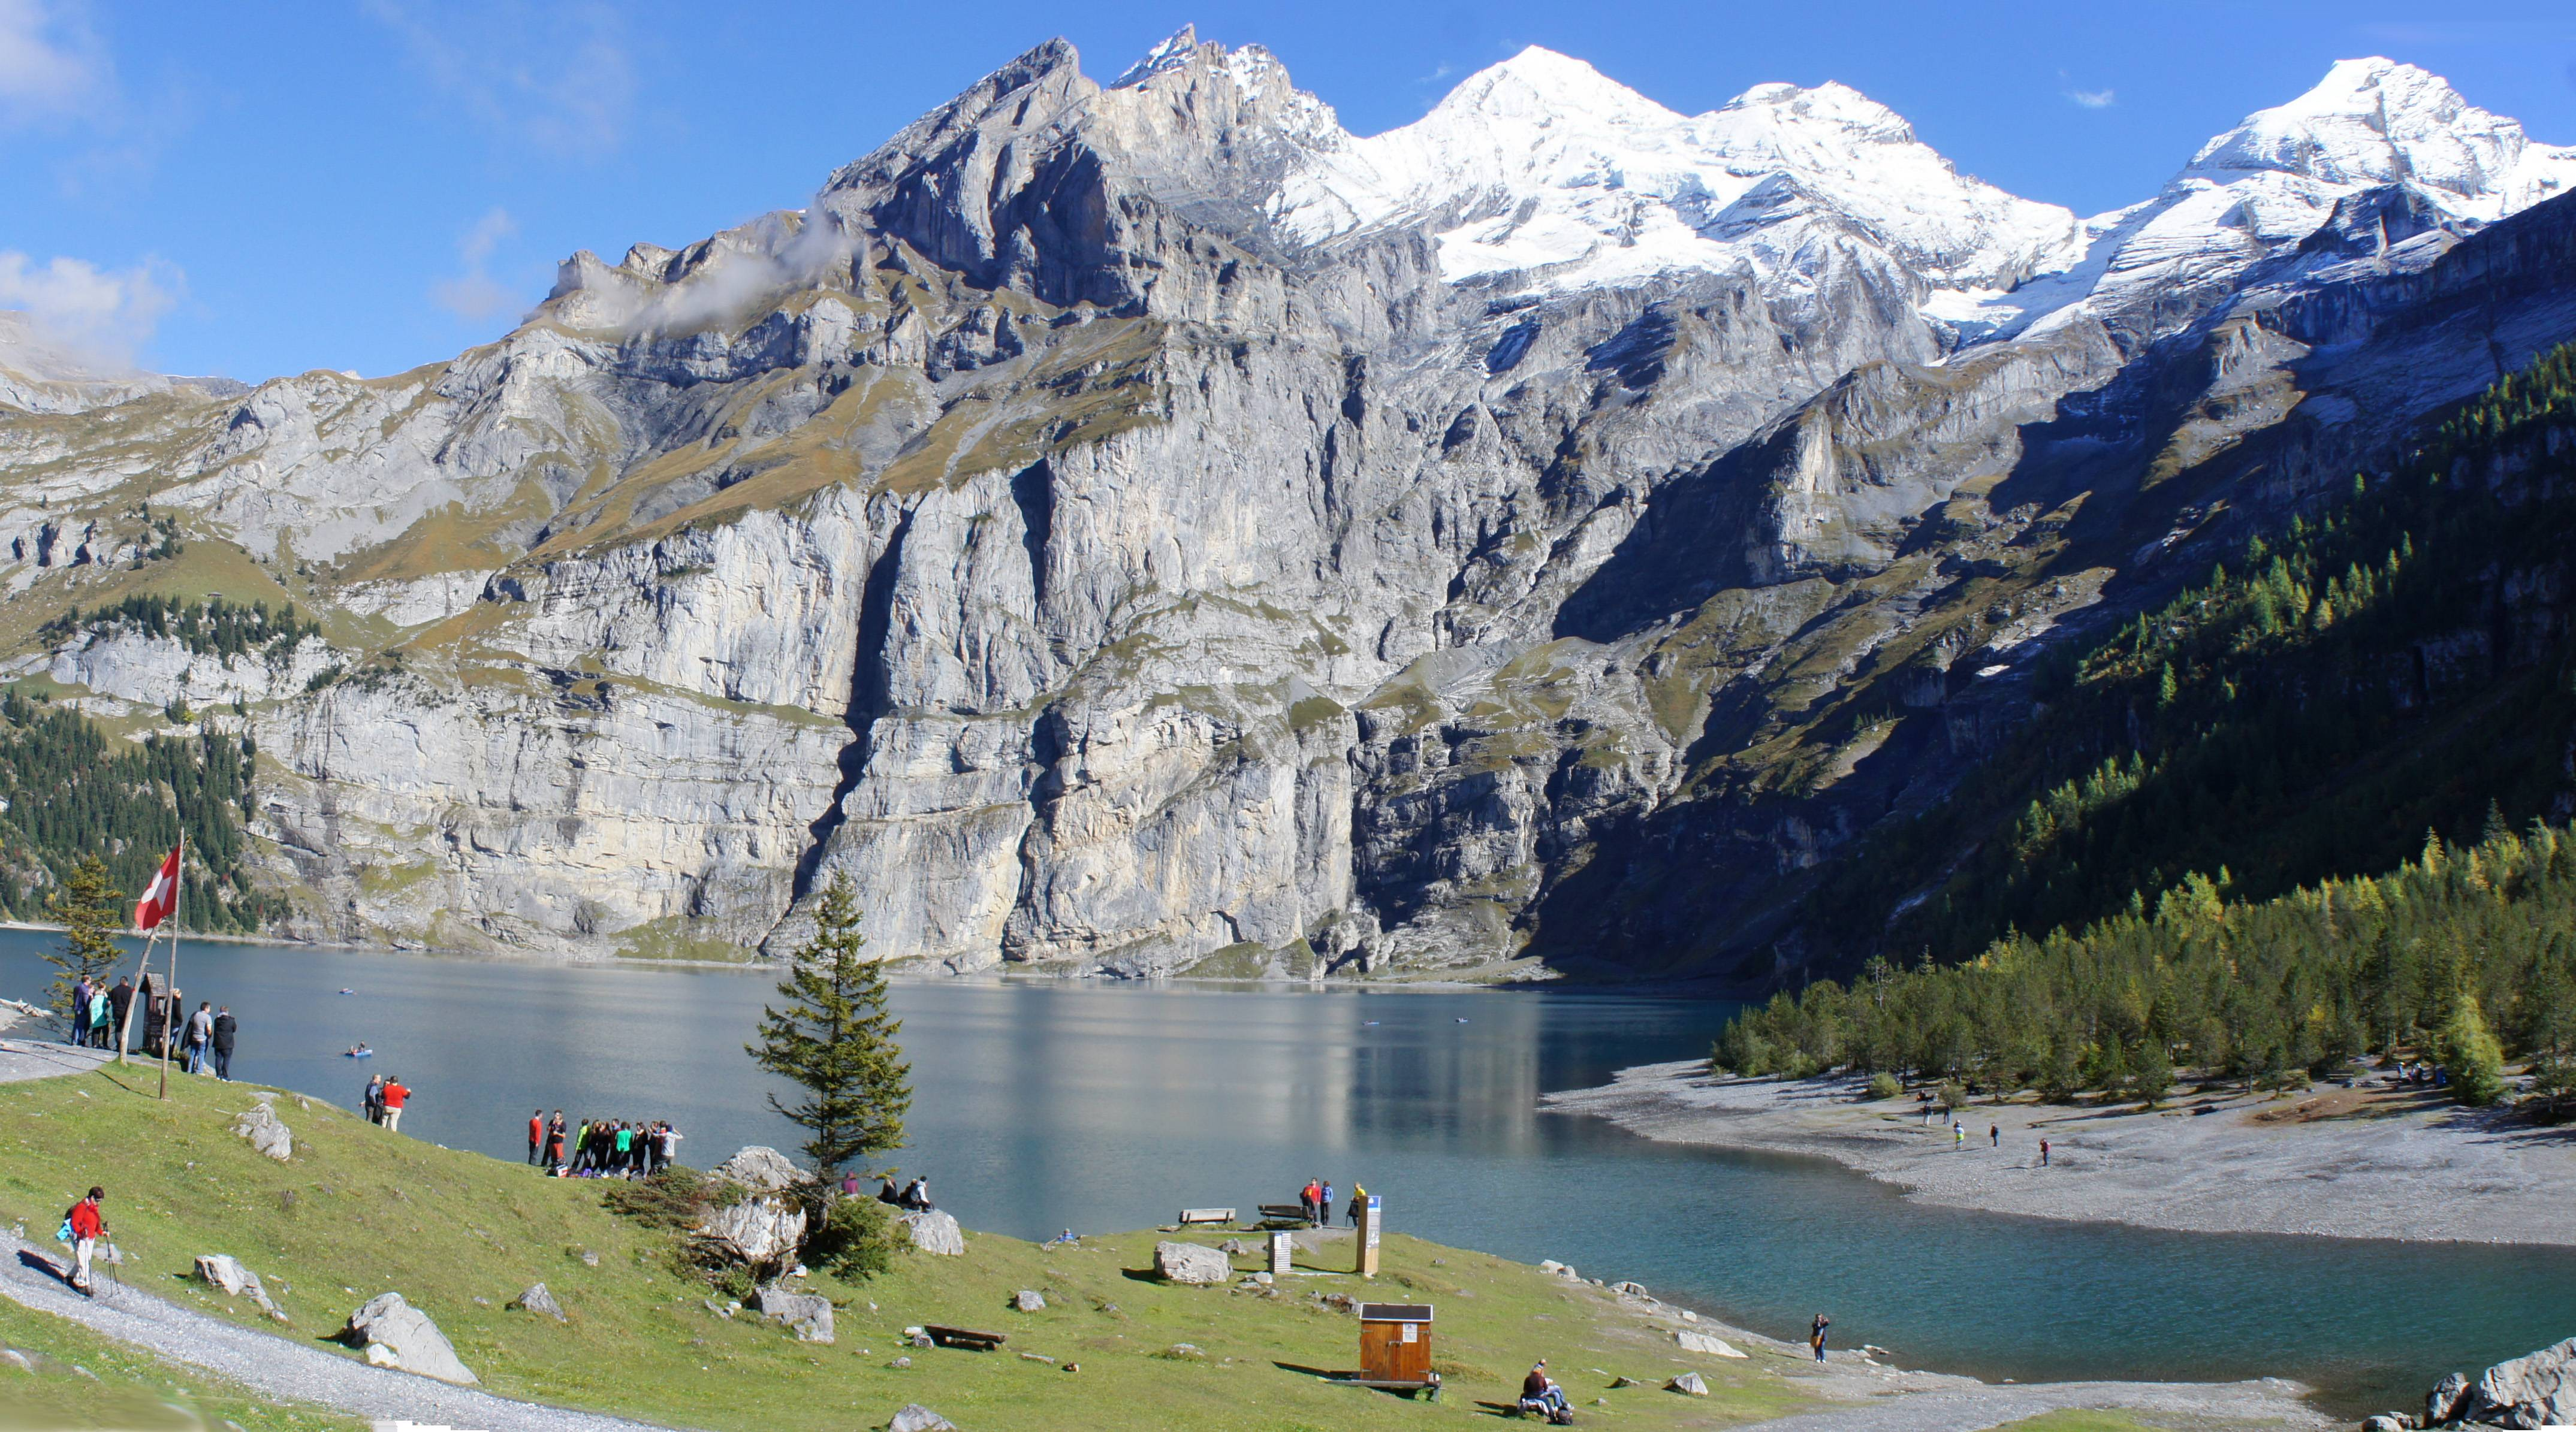 Photo 1: Détour par le Lac d'Oeschinen